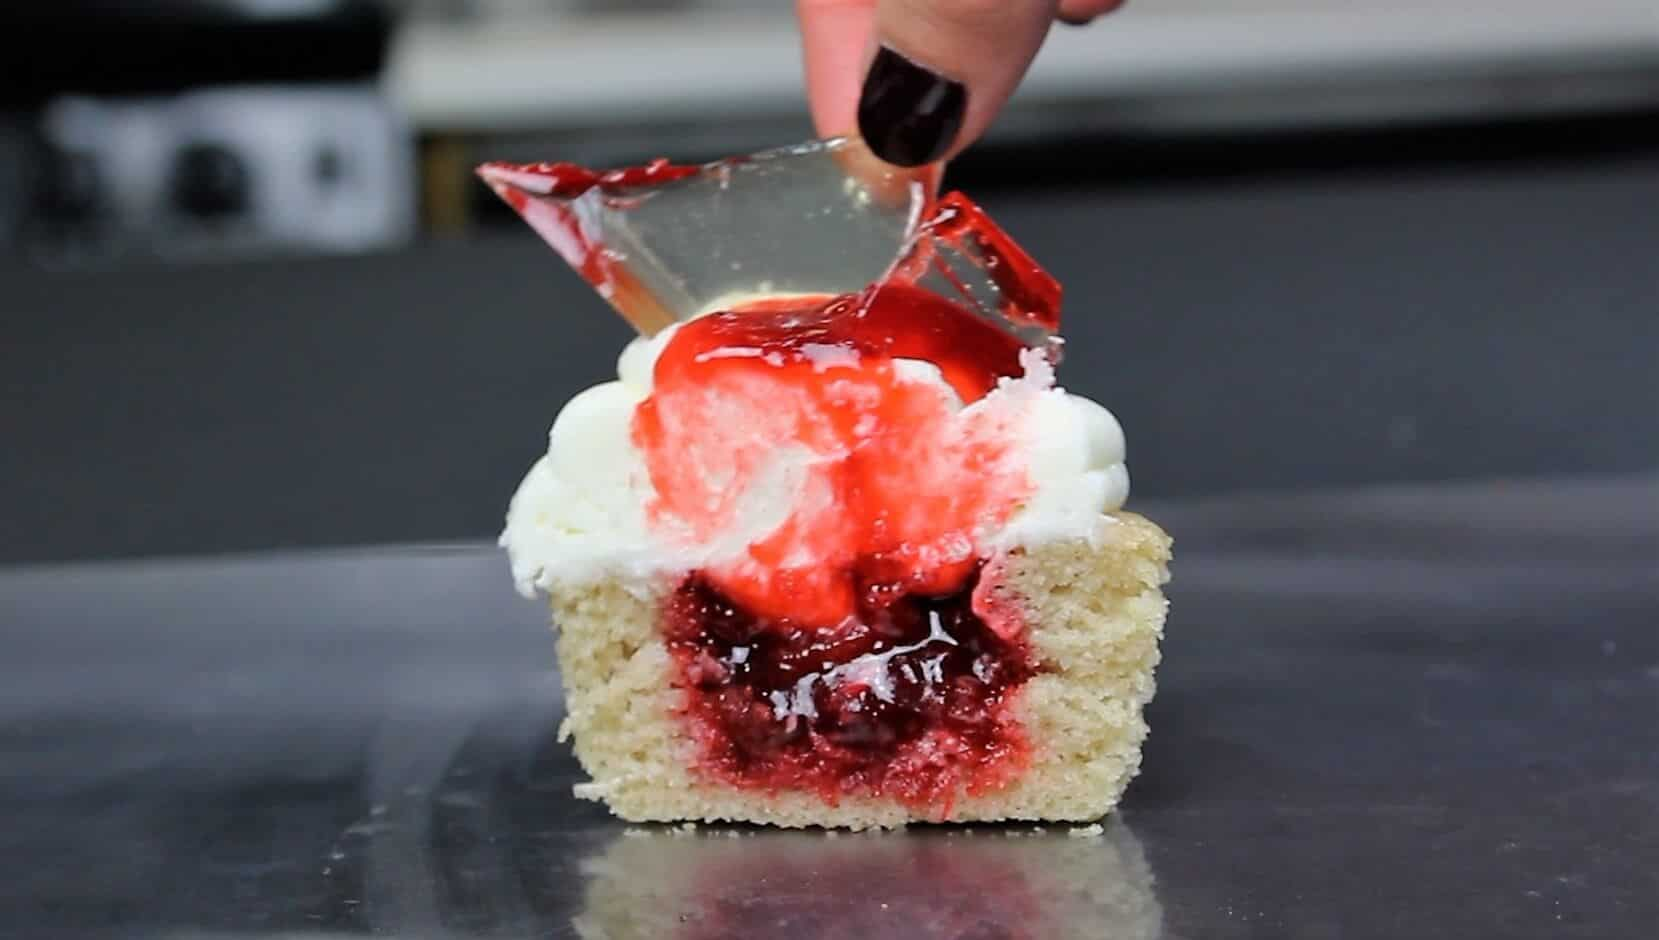 photo of cut open shattered glass cupcake, filled with strawberry jam